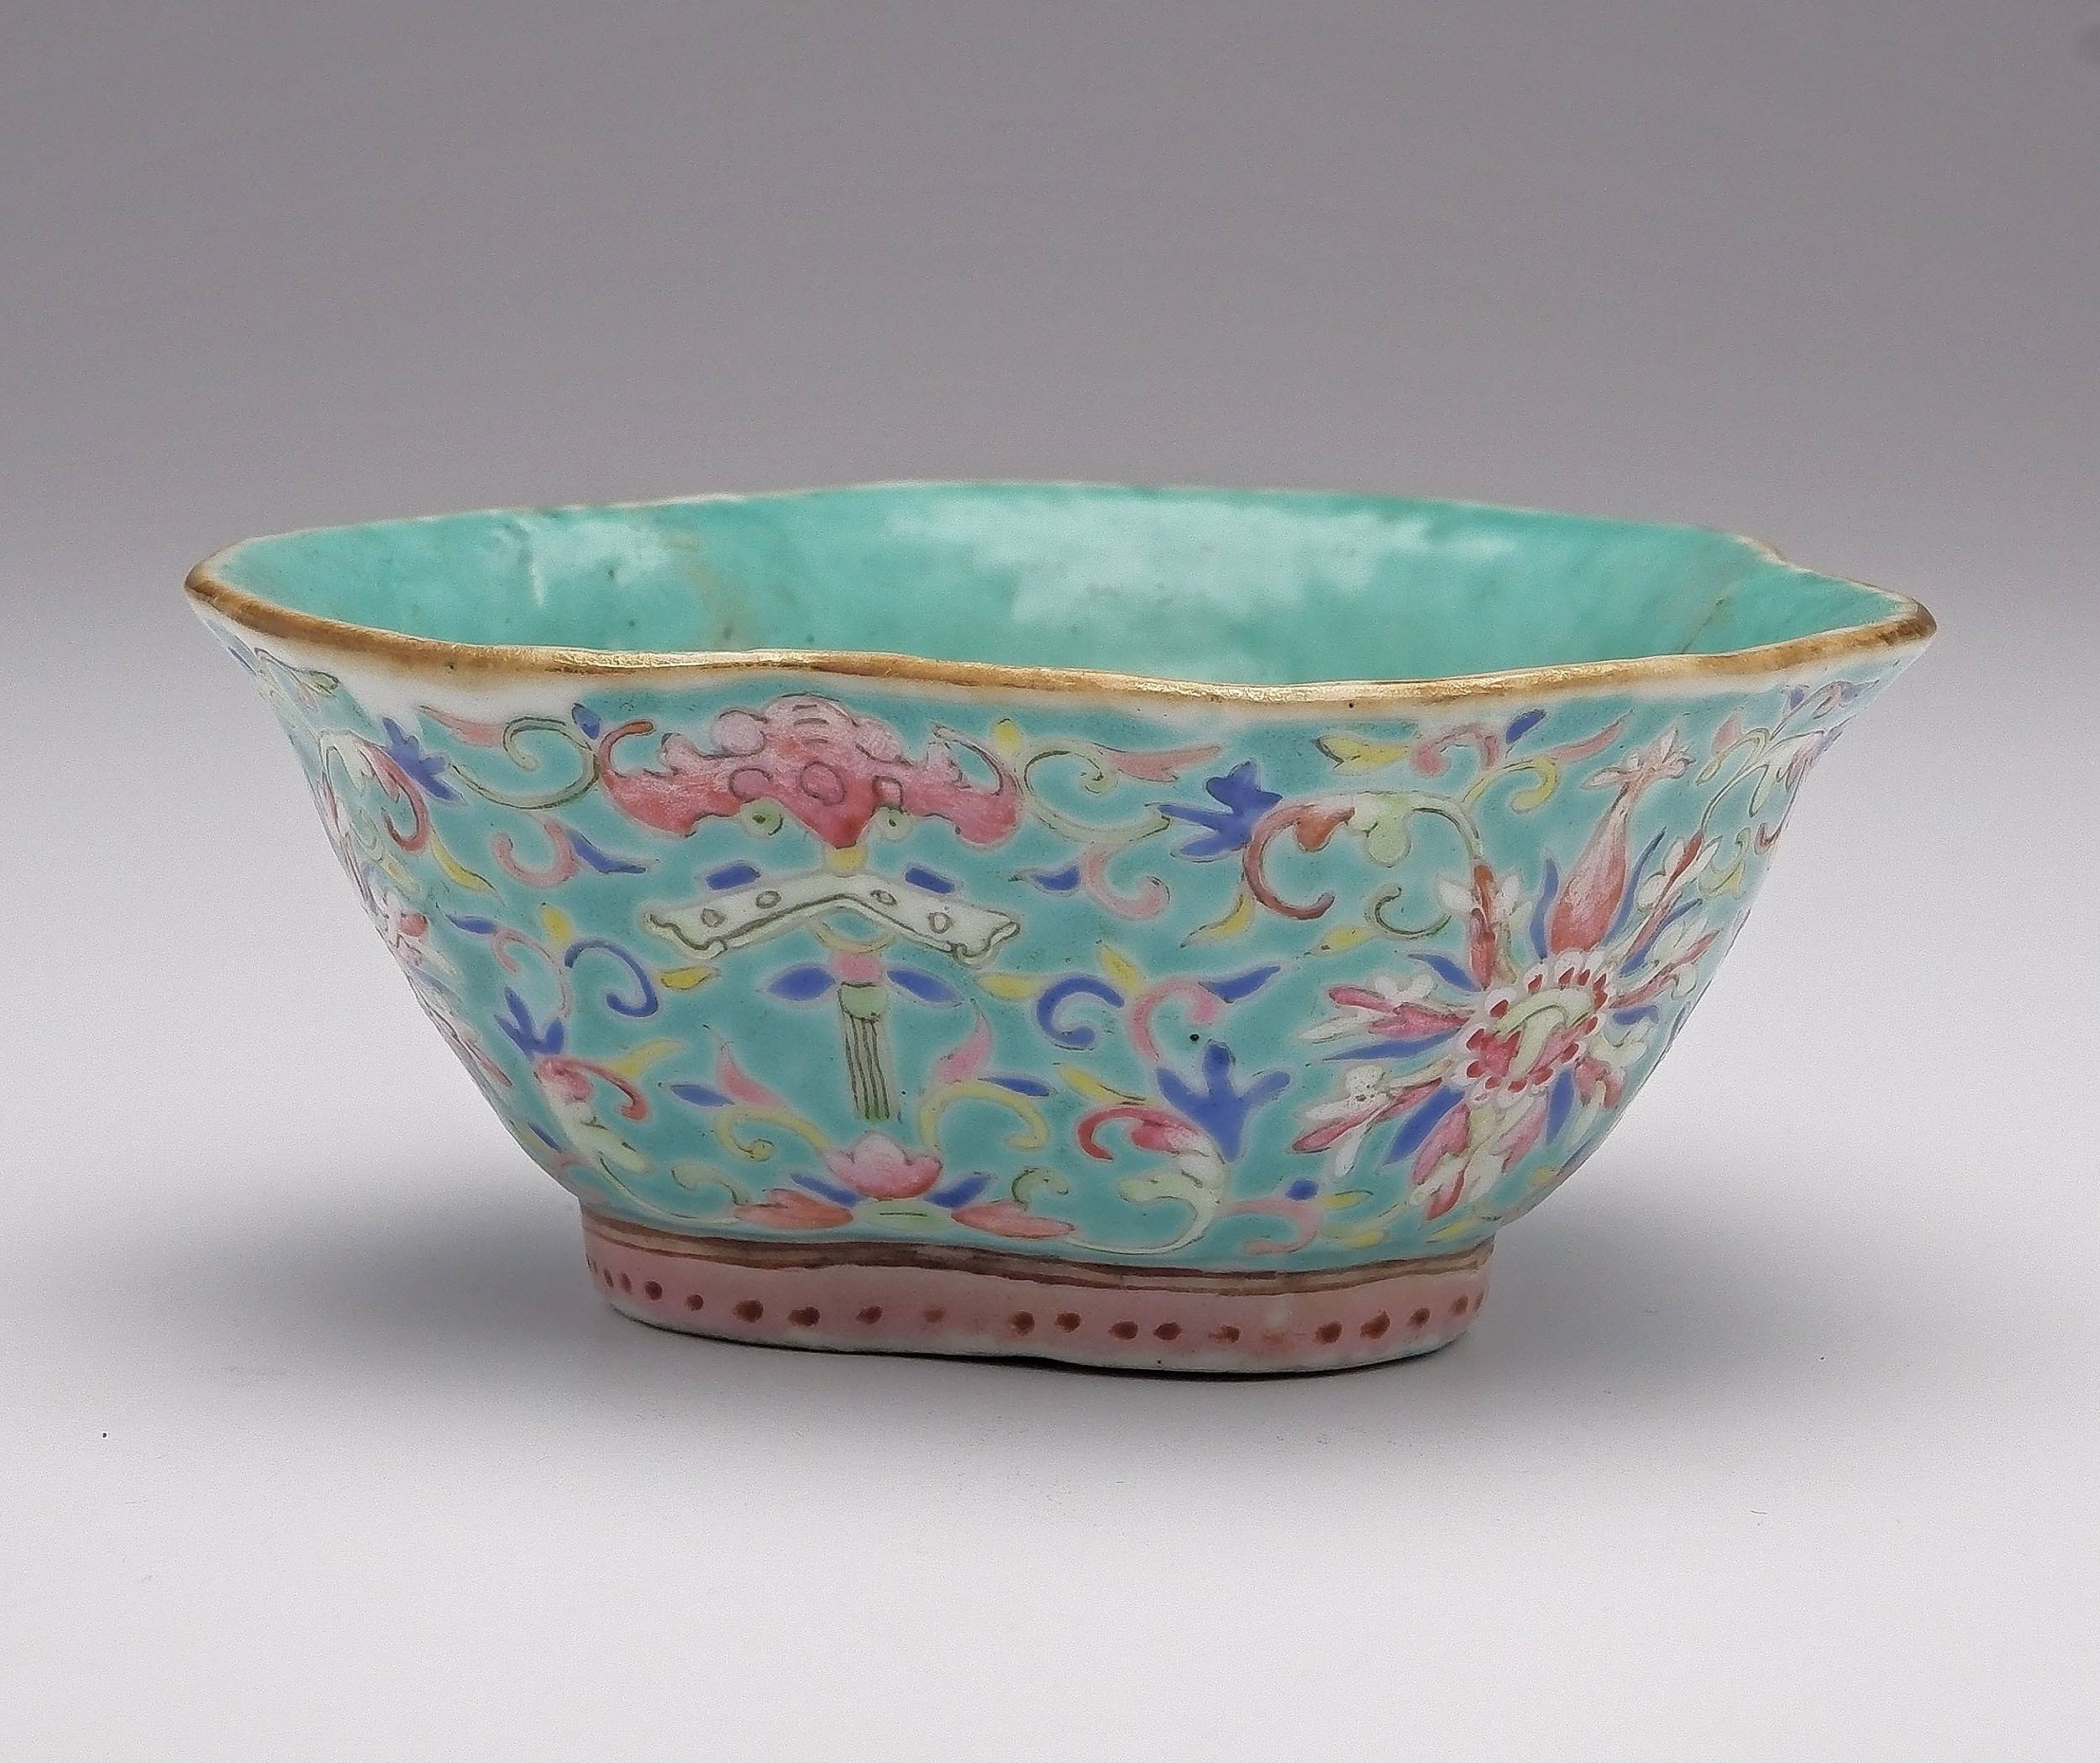 'Chinese Turquoise Ground Famille Rose Bowl Decorated with Lotus and Bats, Late 19th Century'